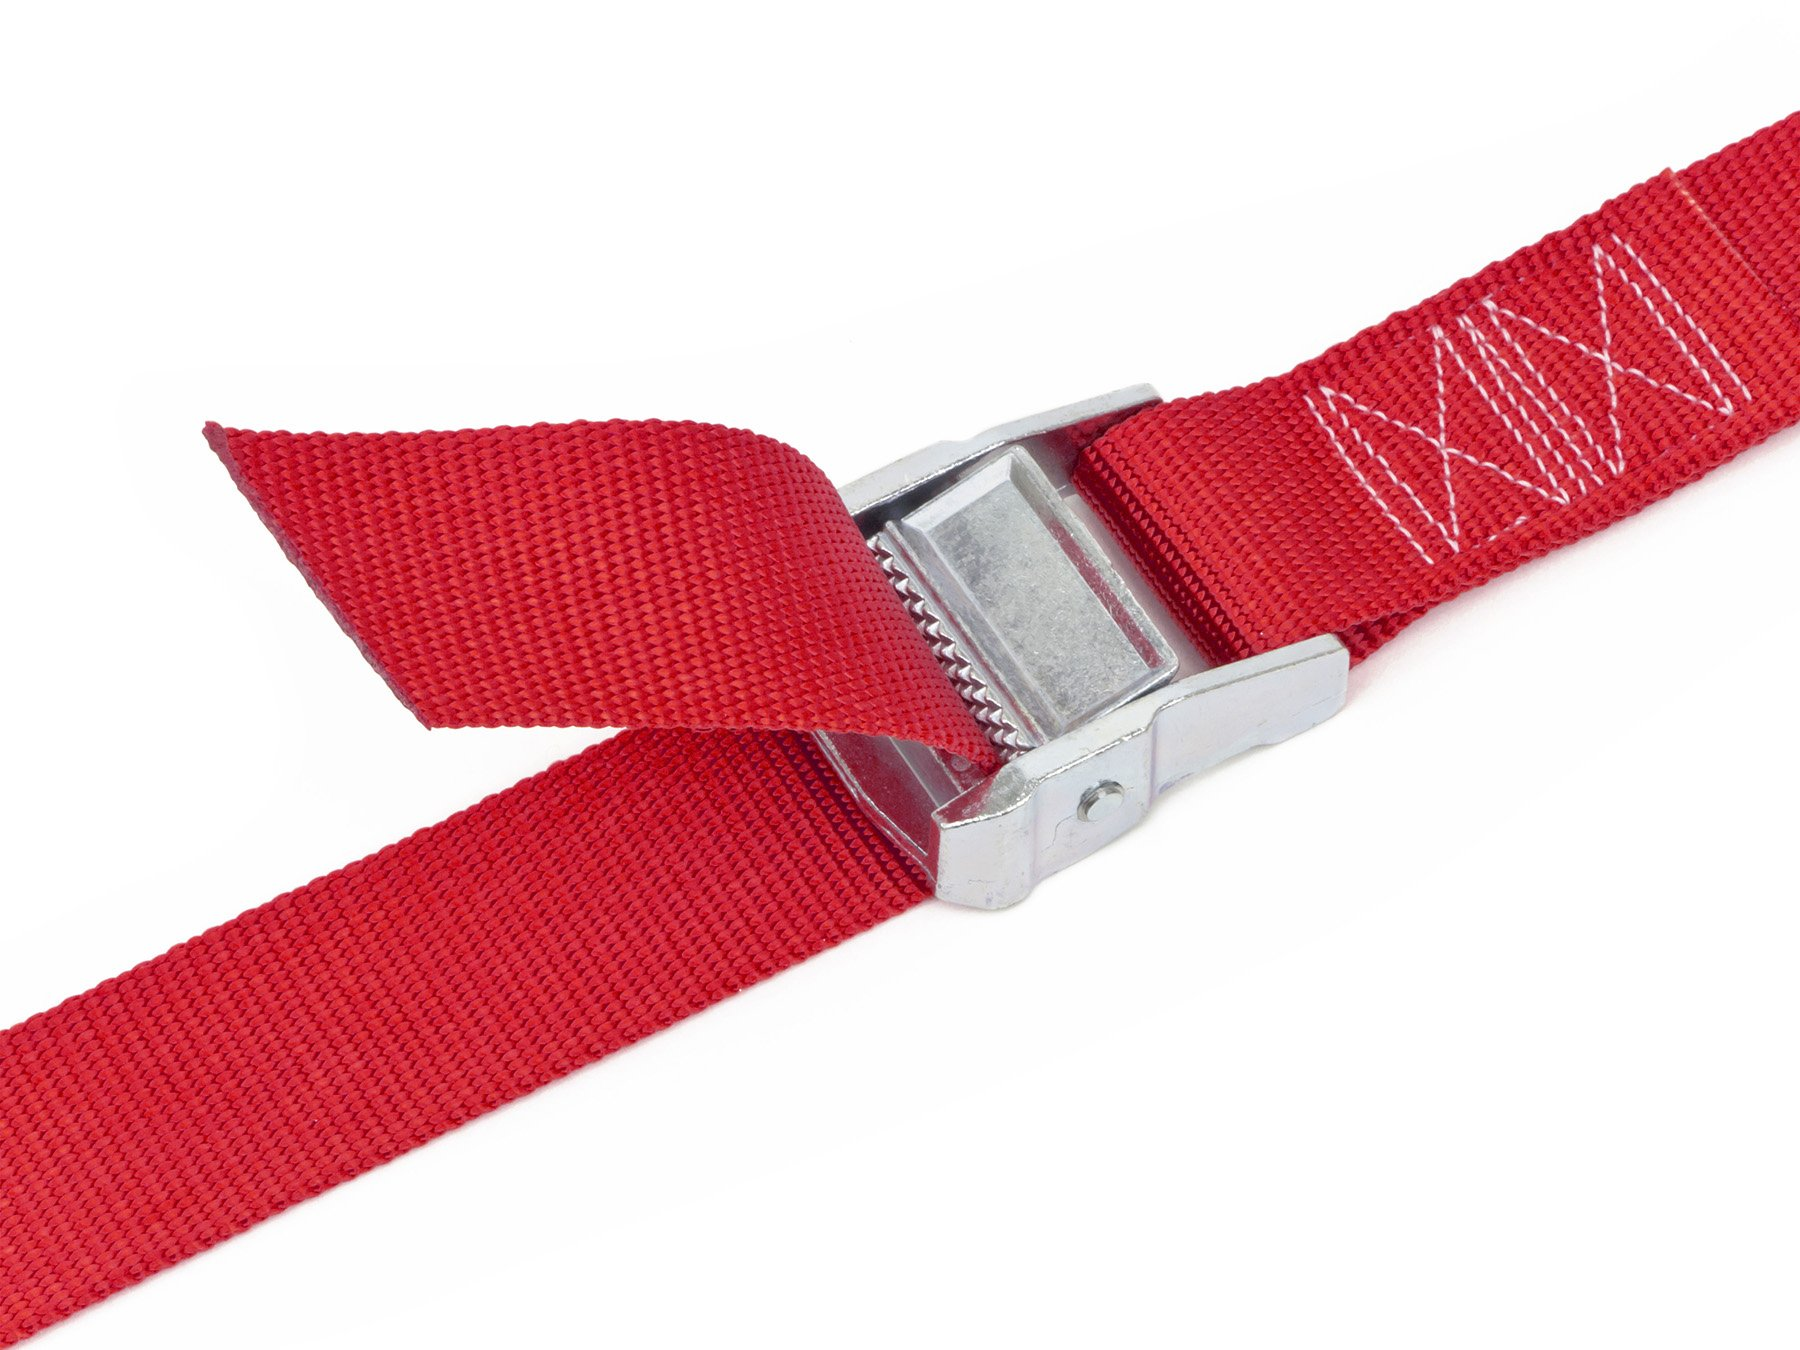 1½'' x 4ft PowerTye Made in USA Heavy-Duty Lashing Strap with Heavy-Duty Buckle, Red, 2-Pack by Powertye (Image #3)